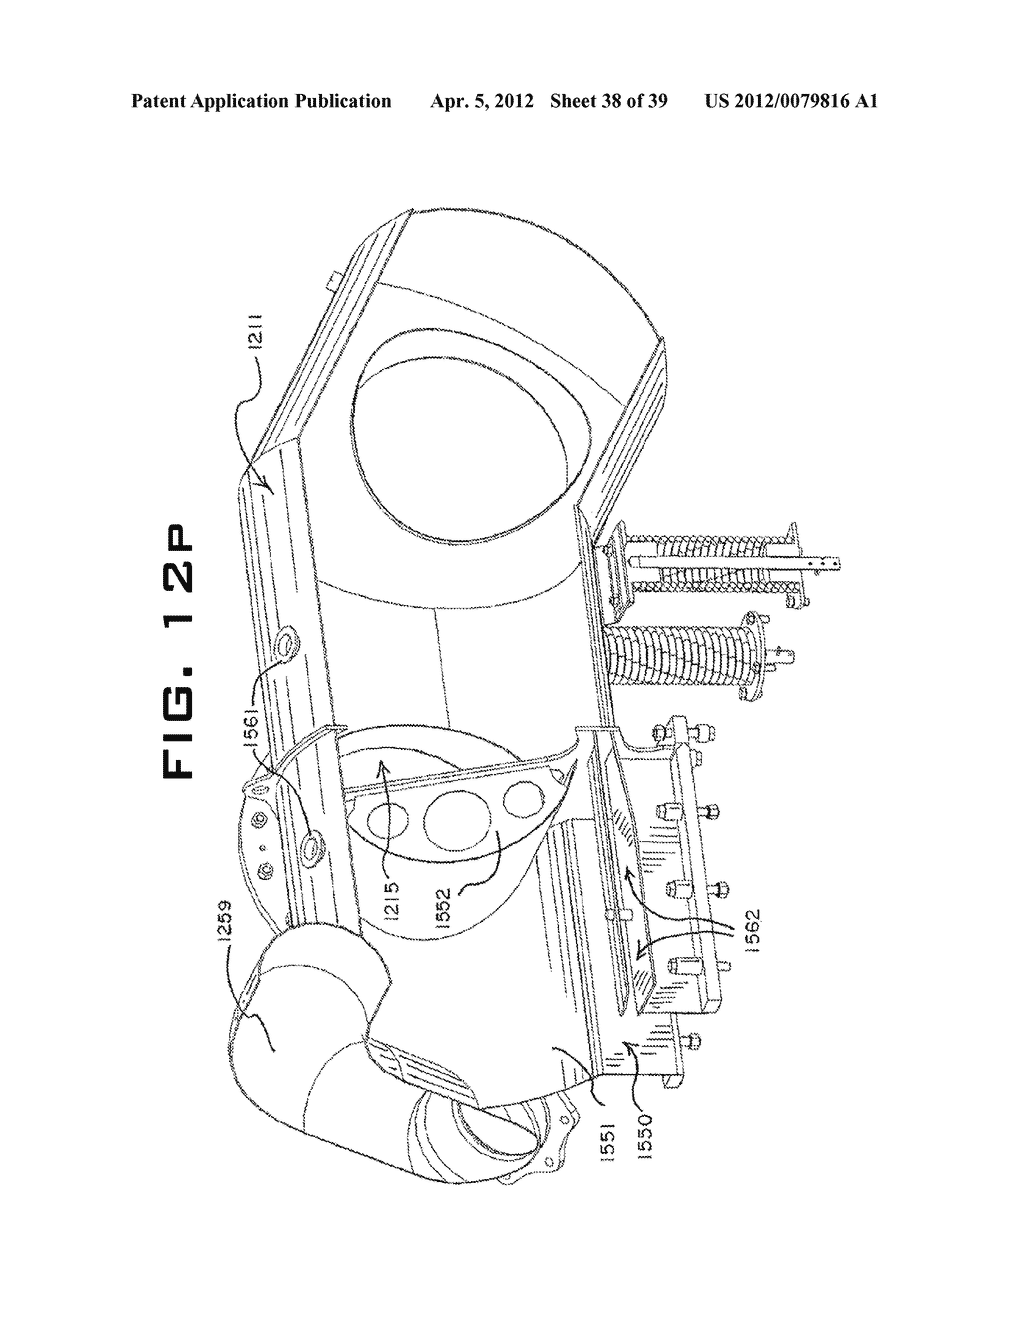 hight resolution of turbocharger mixing manifold for an exhaust aftertreatment system for a locomotive having a two stroke locomotive diesel engine diagram schematic